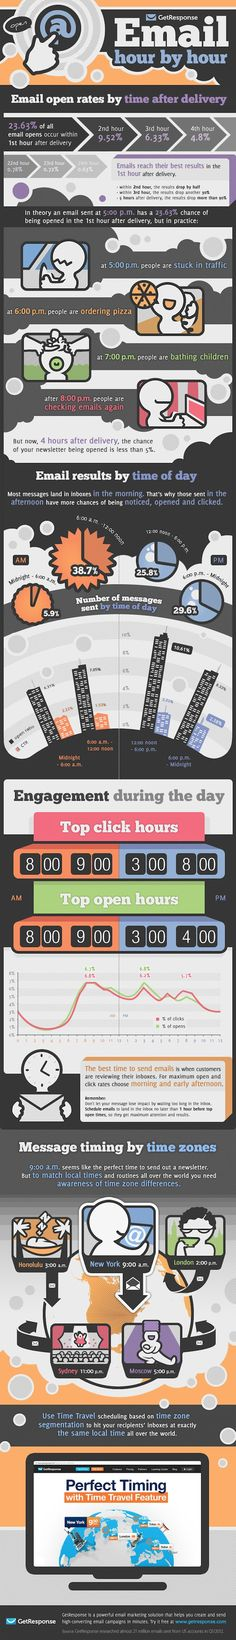 The Best Time Of The Day To Send Emails [INFOGRAPHIC]